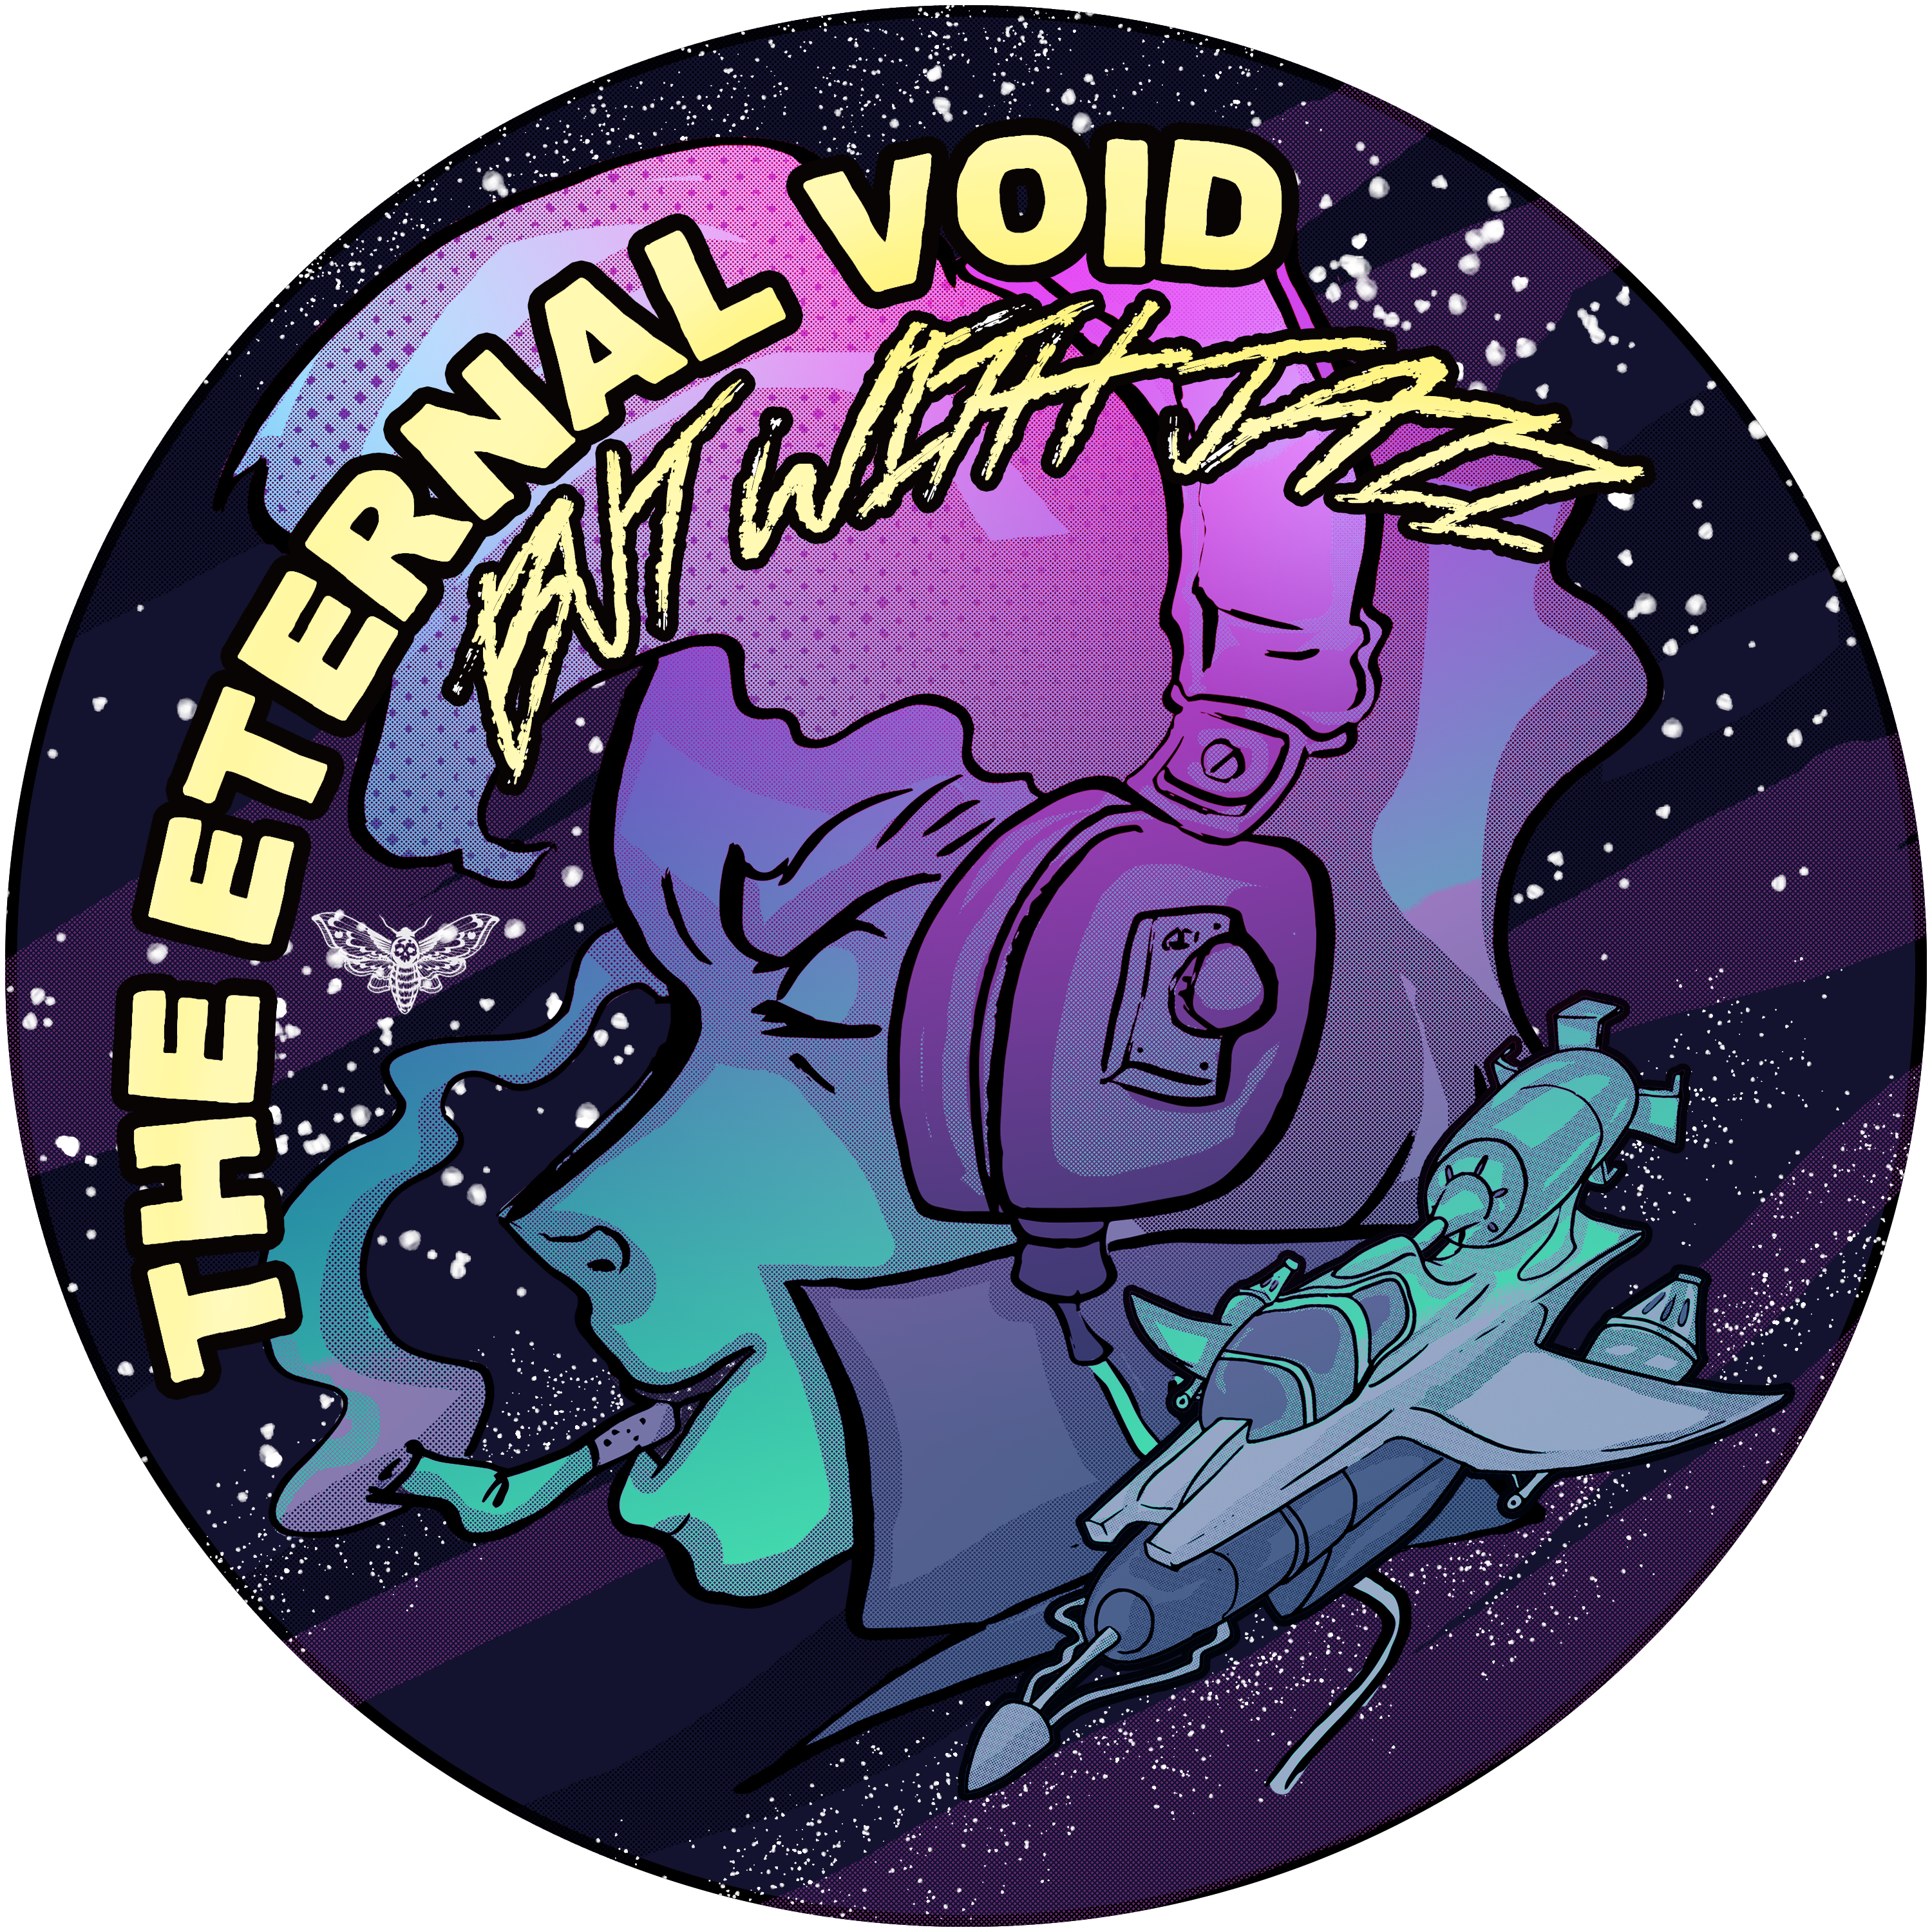 The Eternal Void, but with Jazz